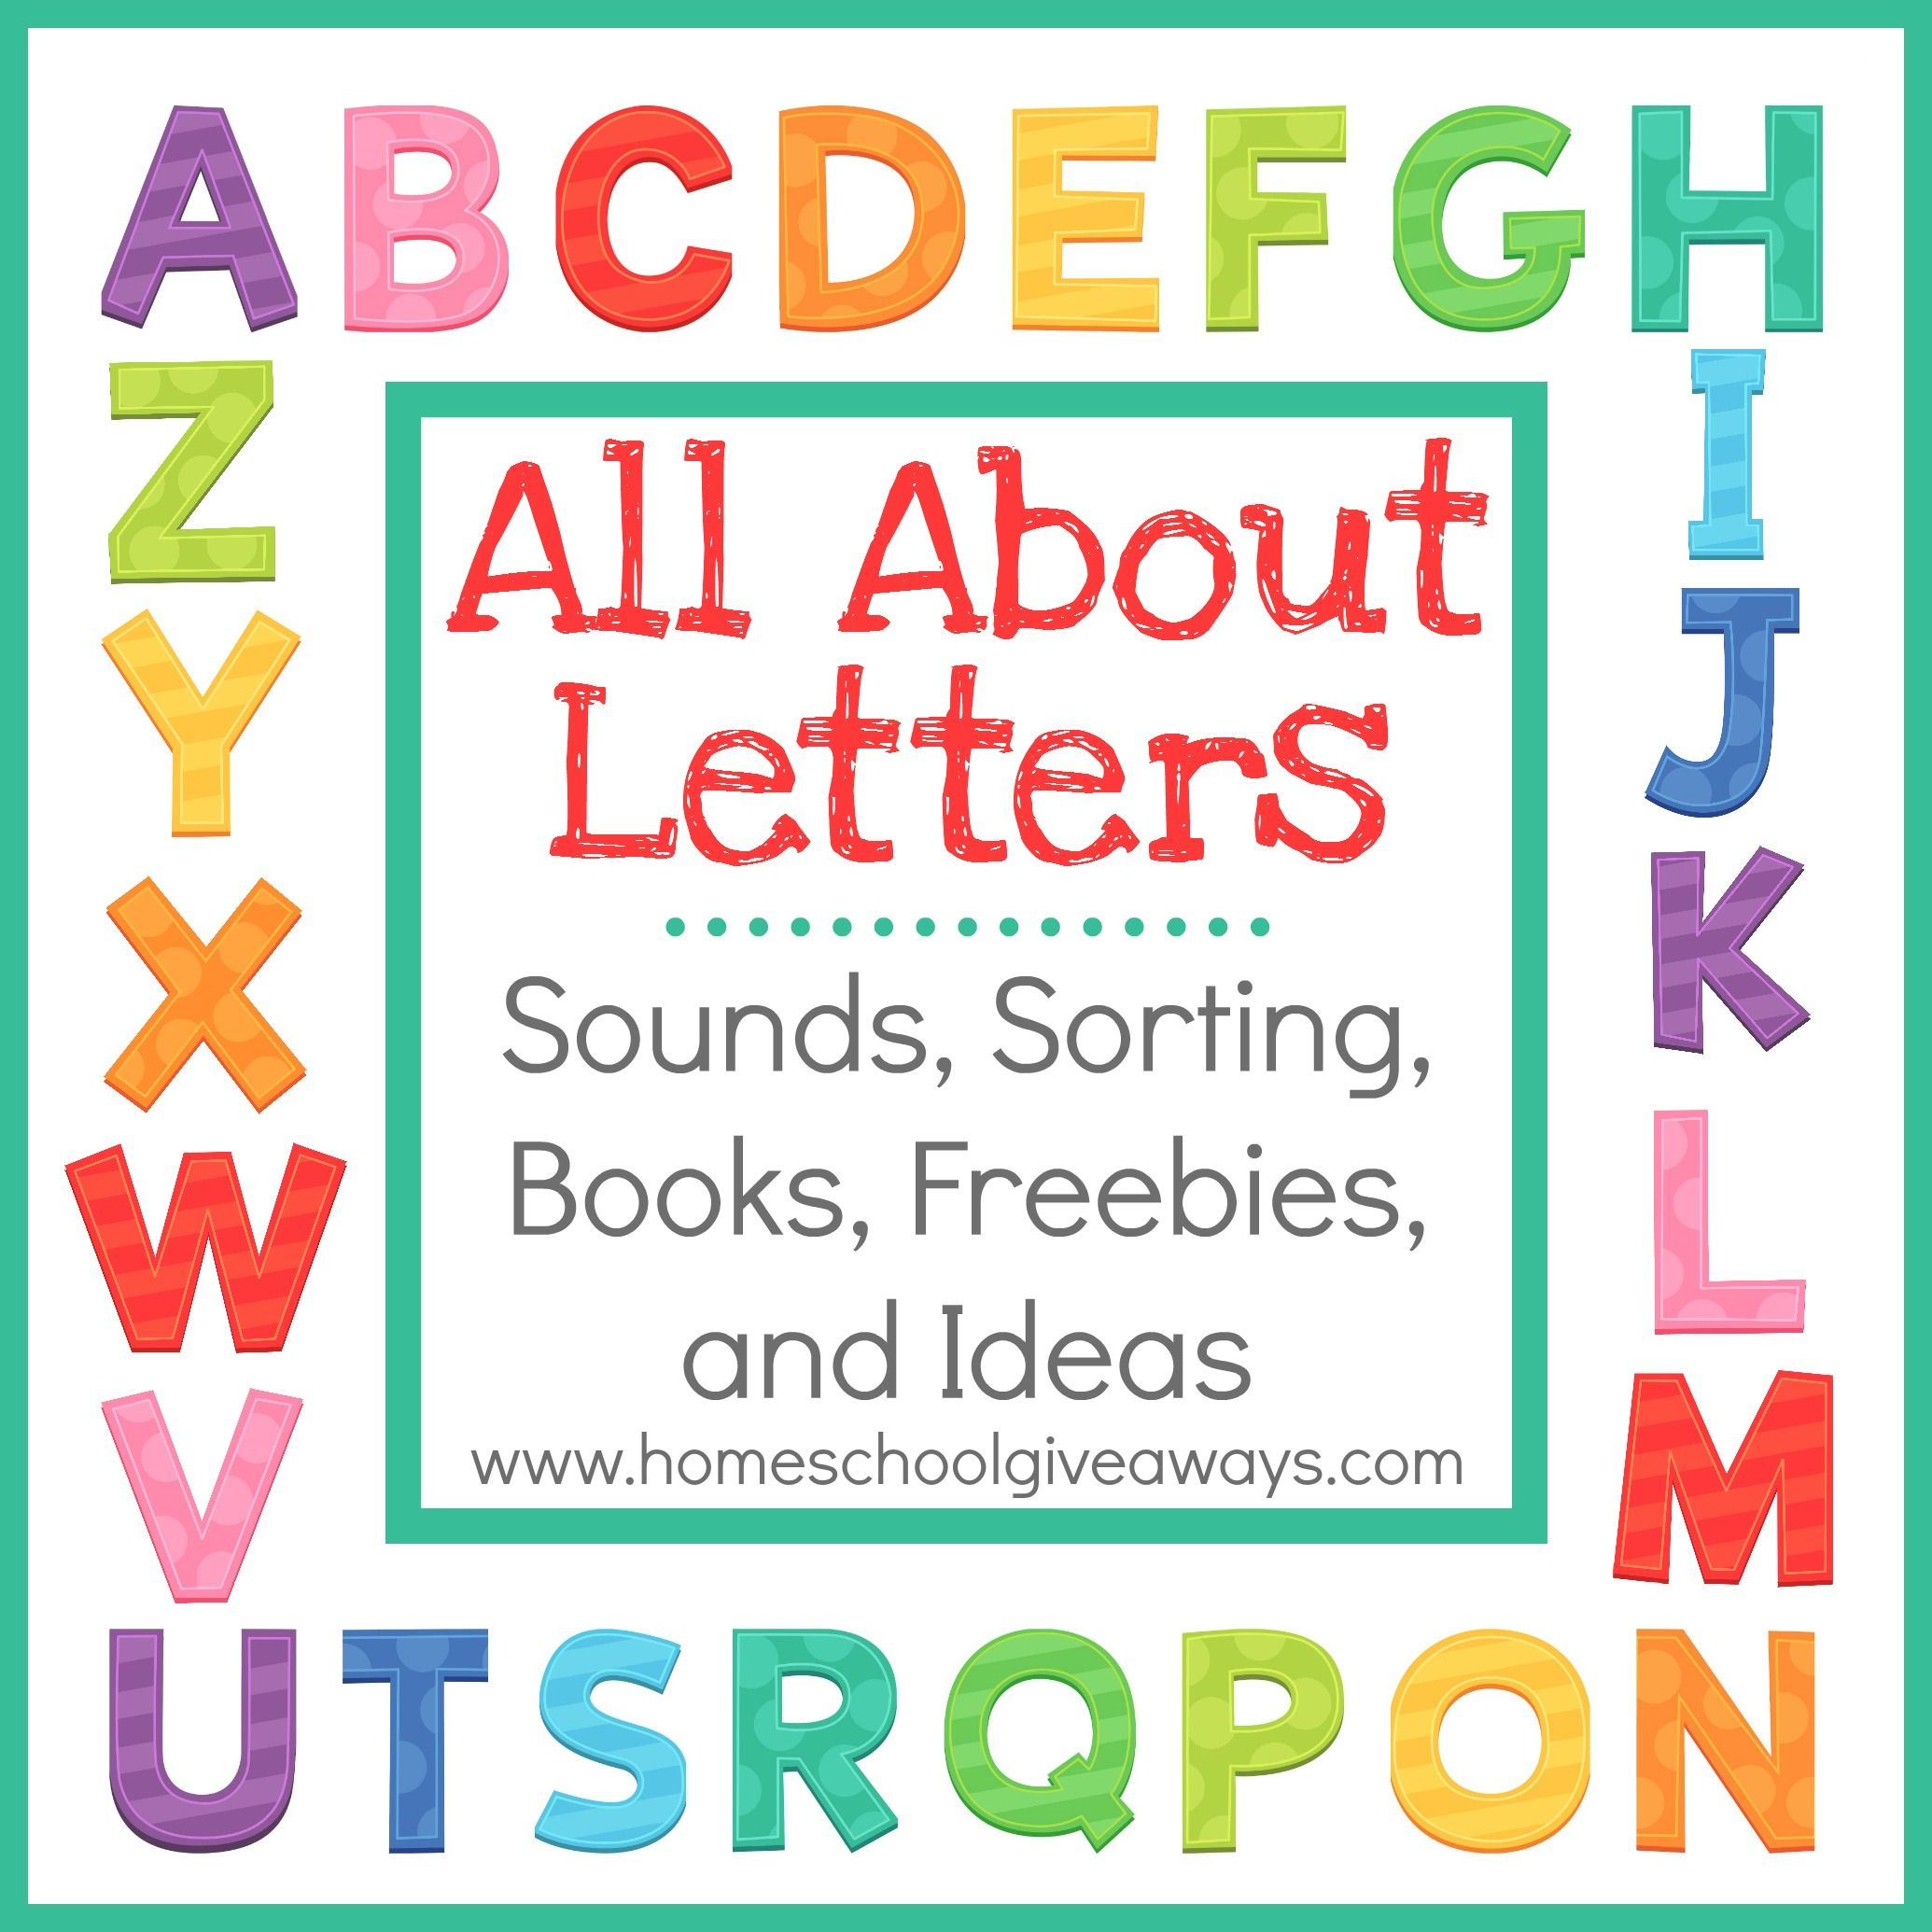 All About Letters Sounds Sorting Books Freebies And